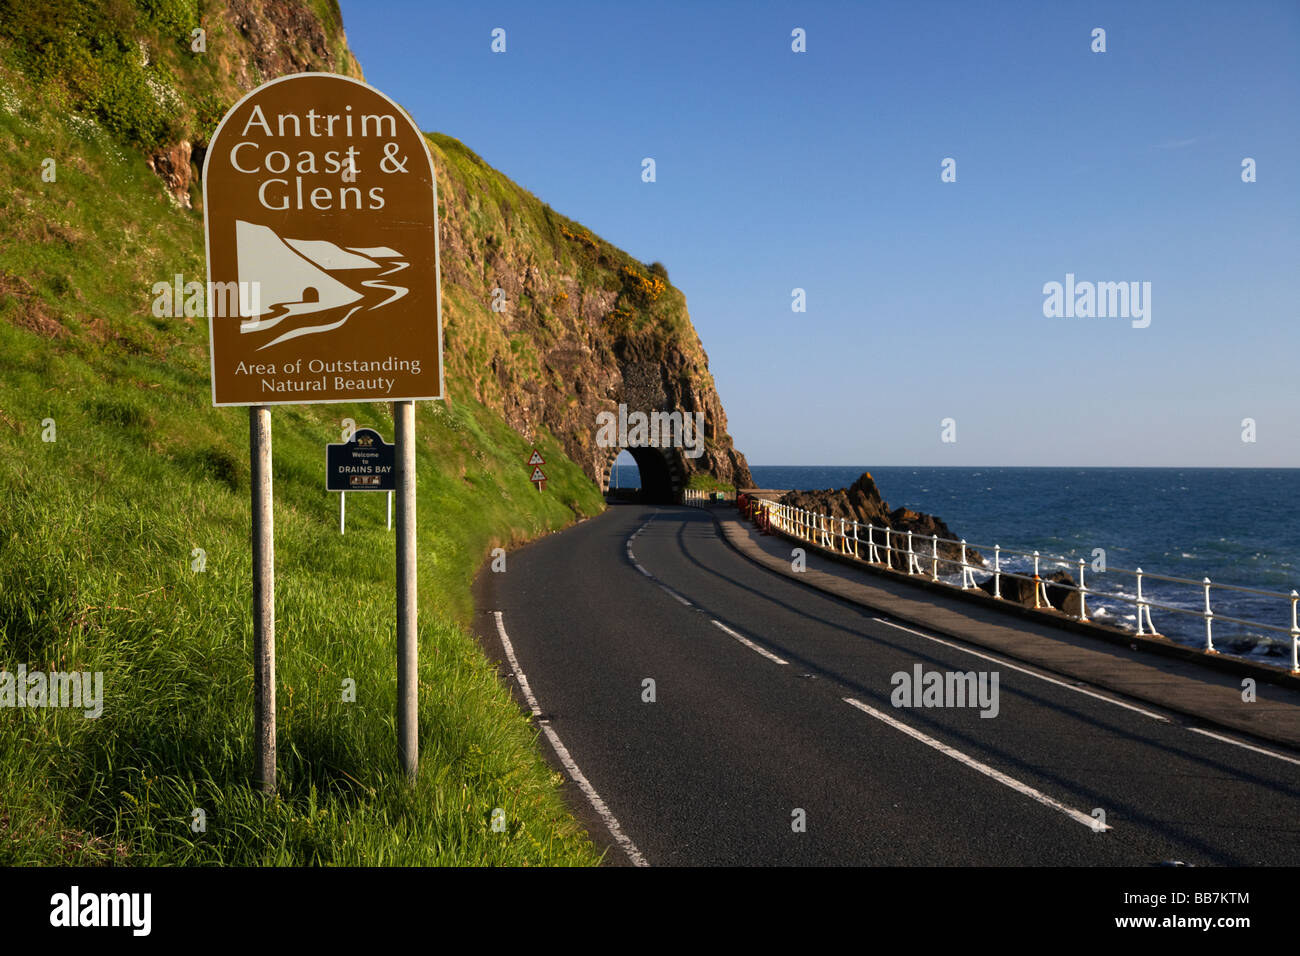 Antrim coast and glens sign on the A2 causeway coastal route coast road passes through the black arch outside Larne - Stock Image